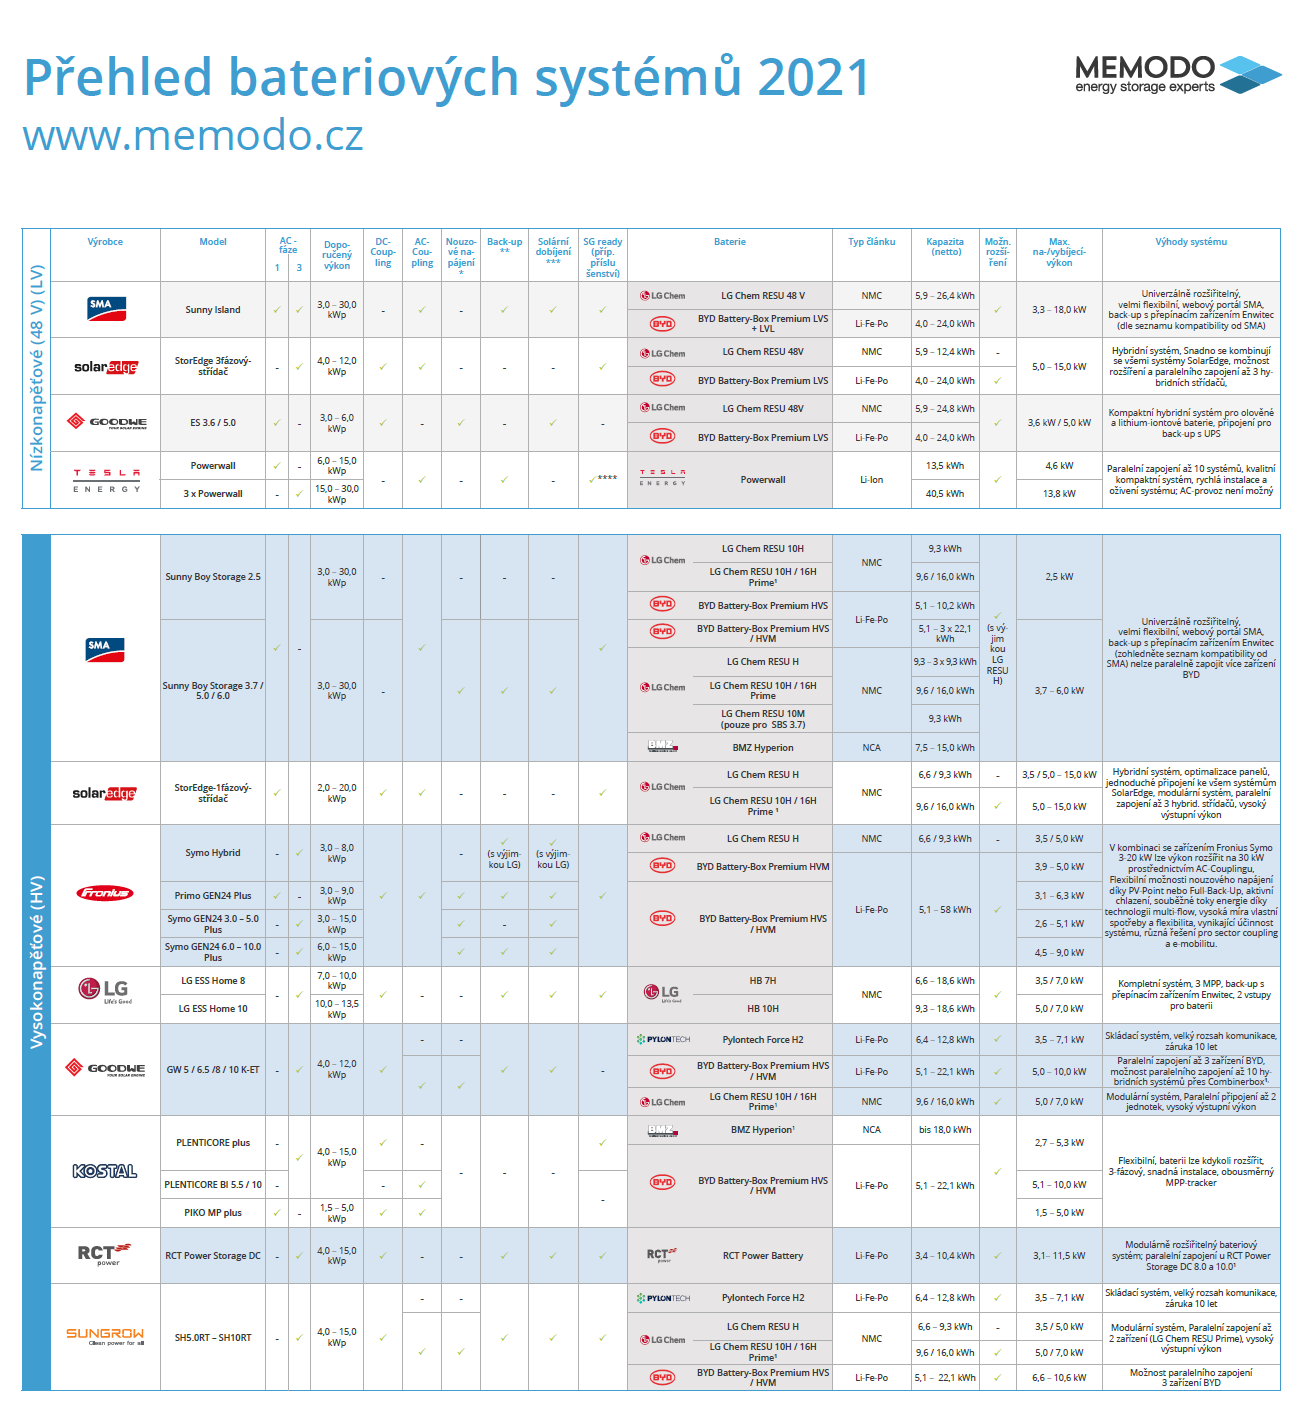 Prehled-bateriovych-systemu-2021